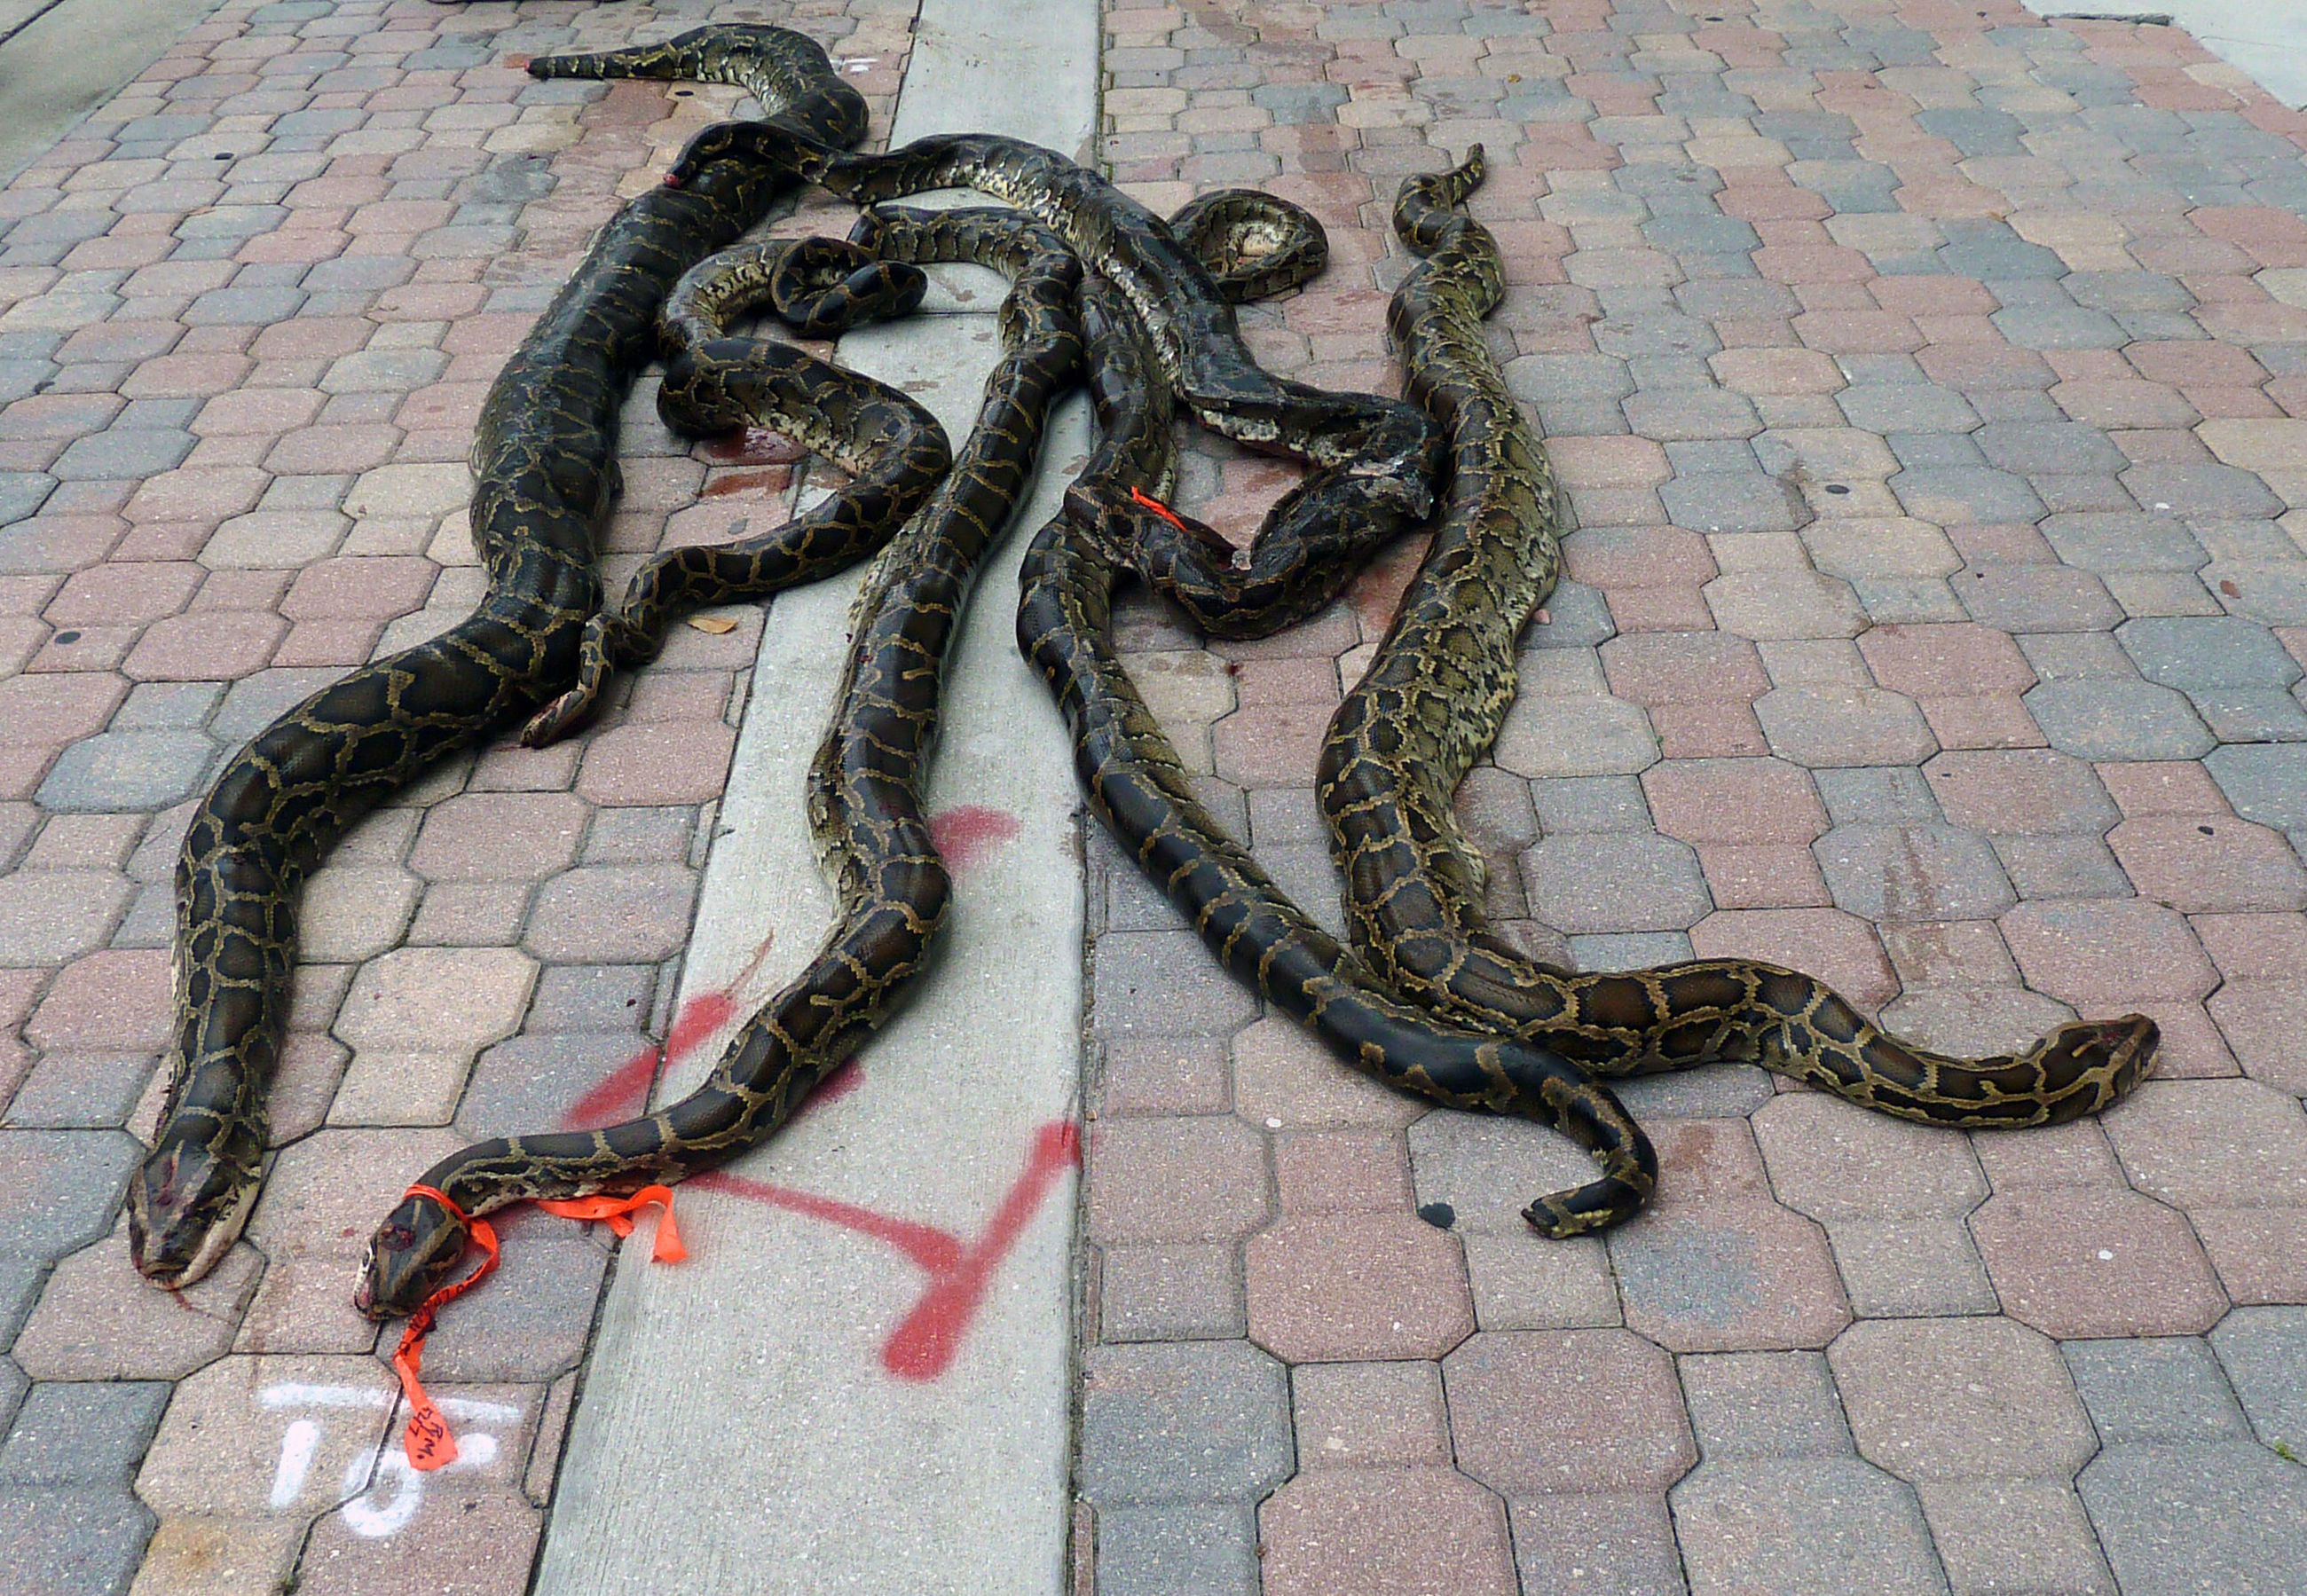 High angle view of dead pythons on footpath